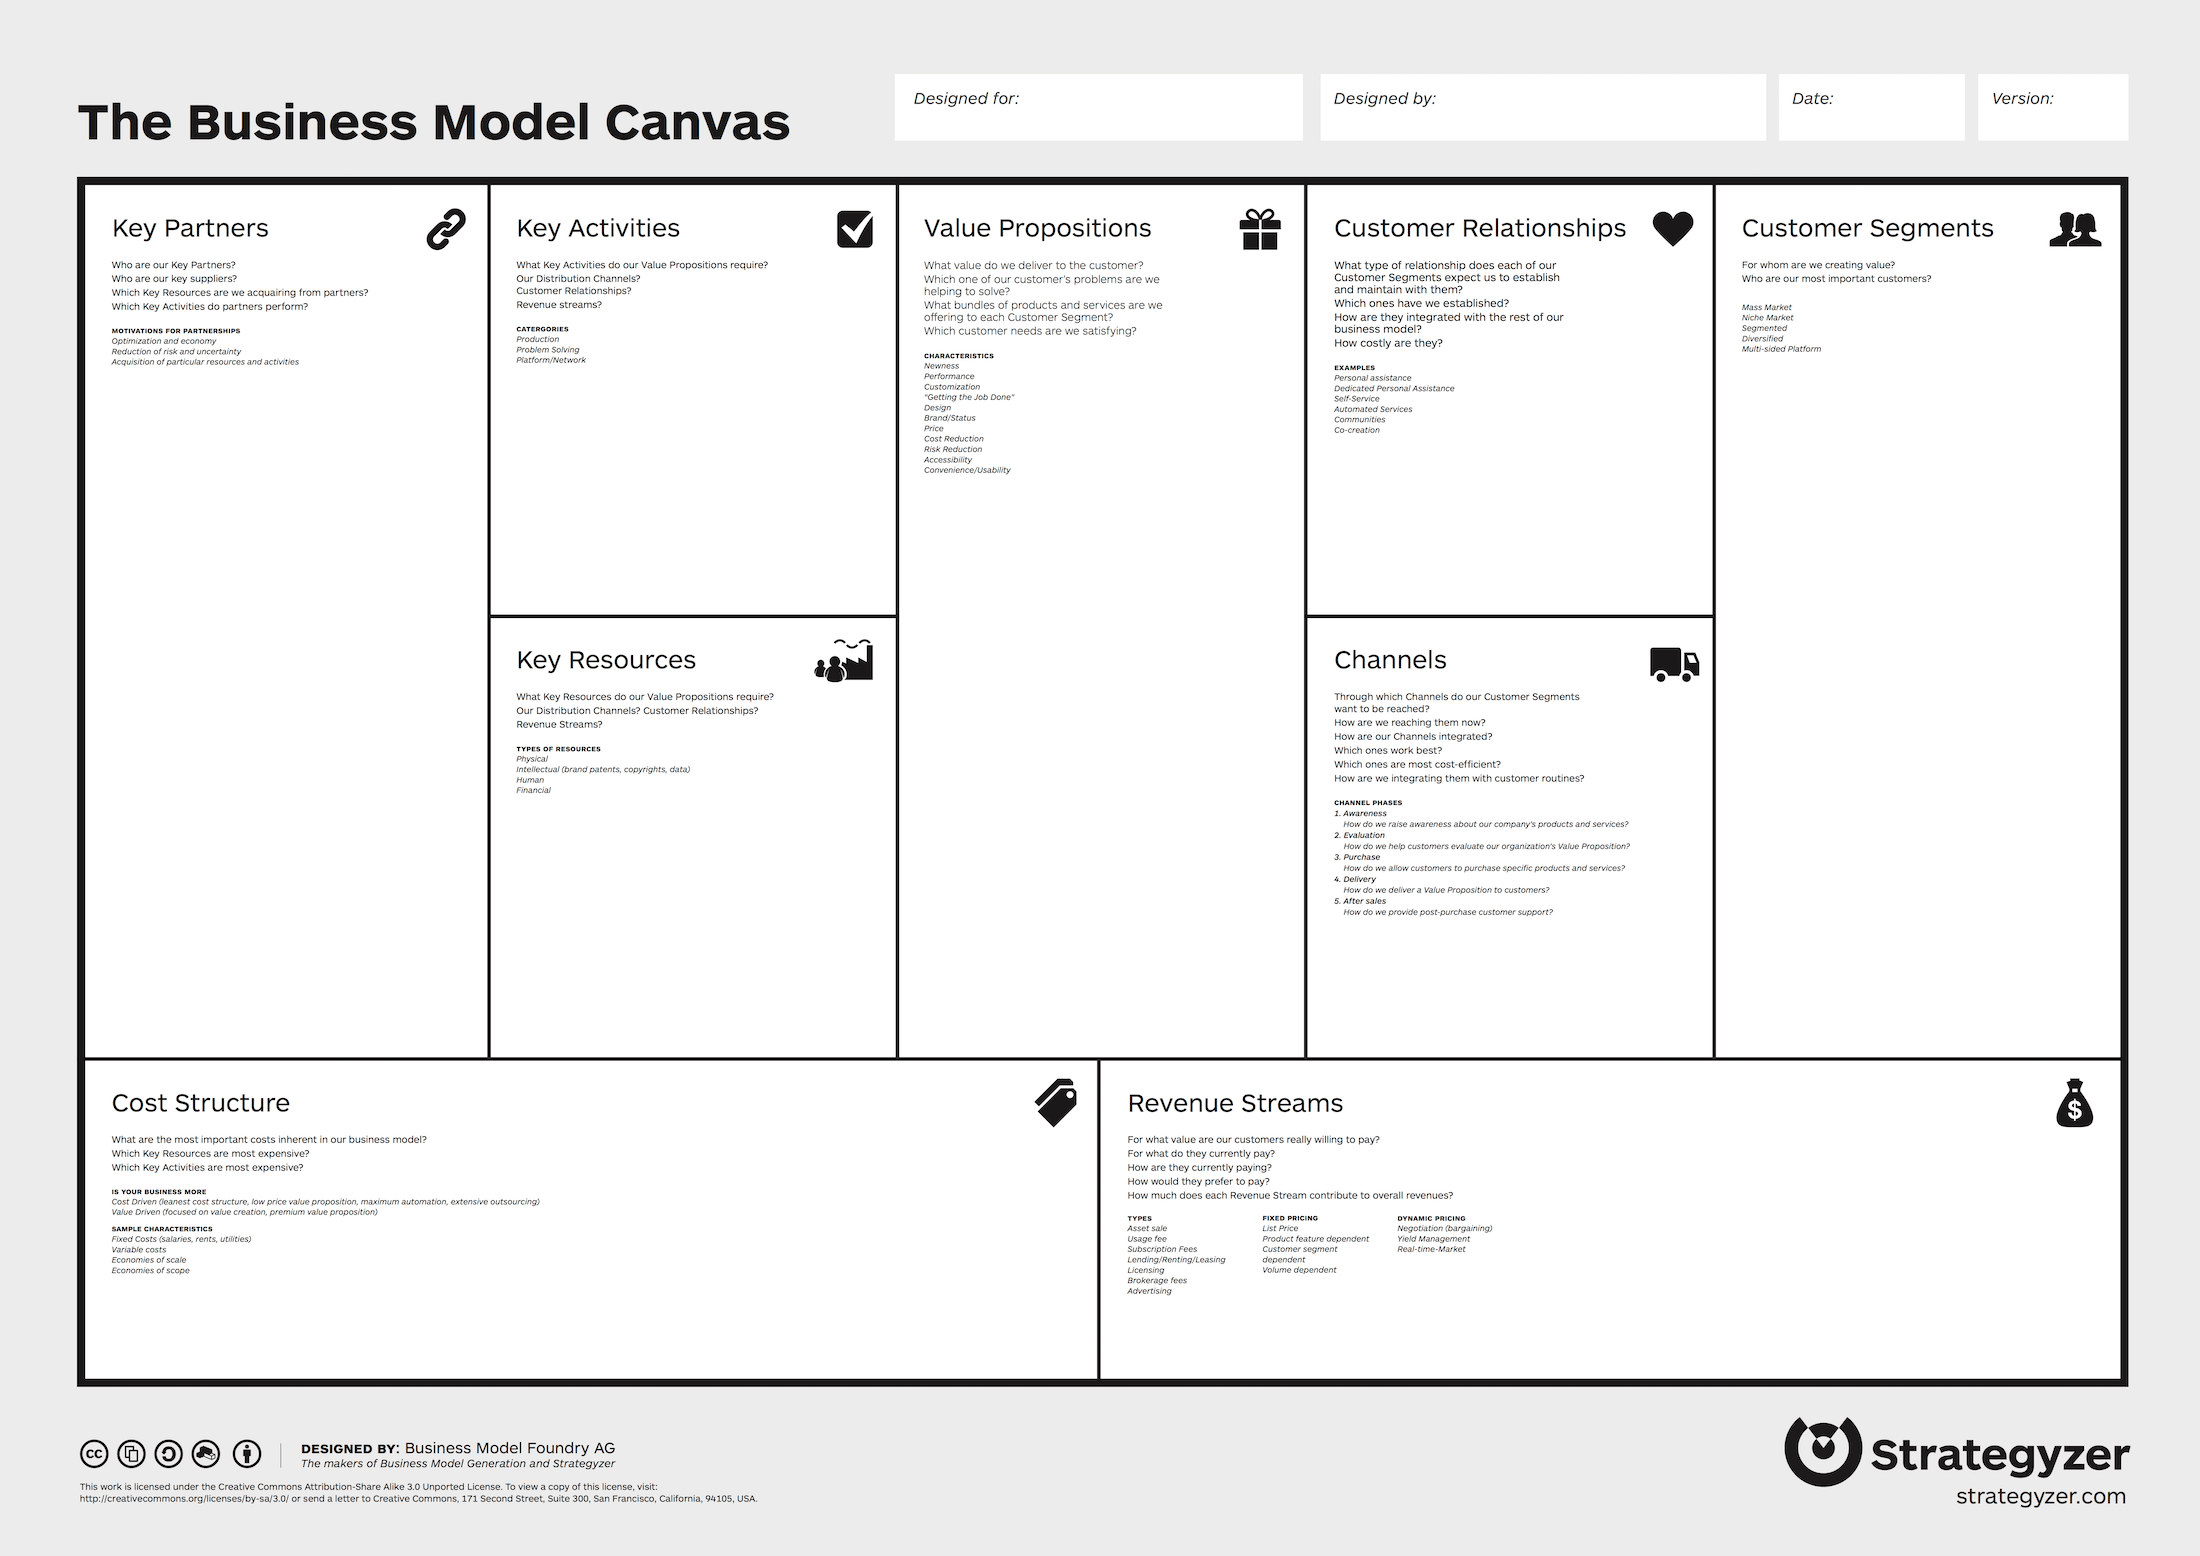 Business Model Canvas by Strategyzer